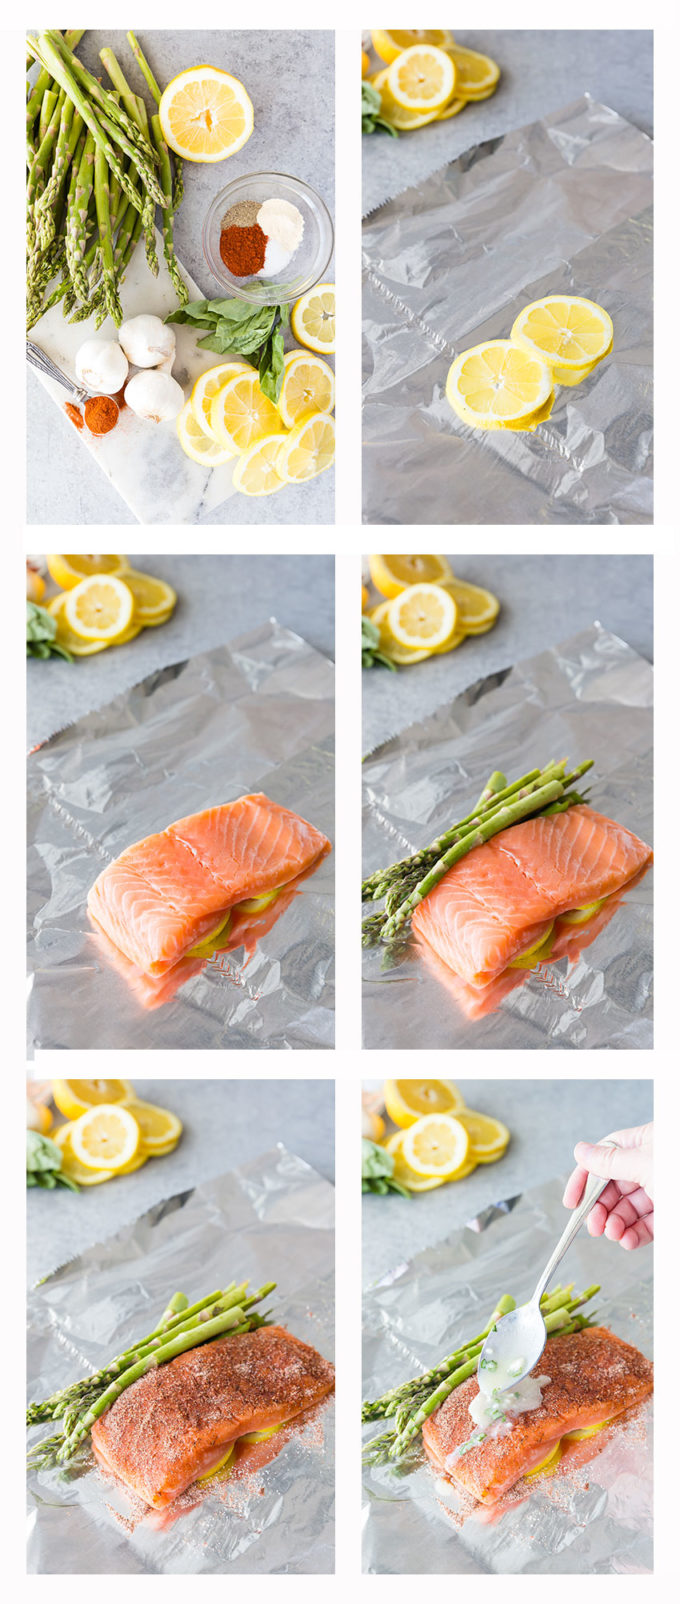 Lemon Butter and Basil Salmon with Asparagus foil packets